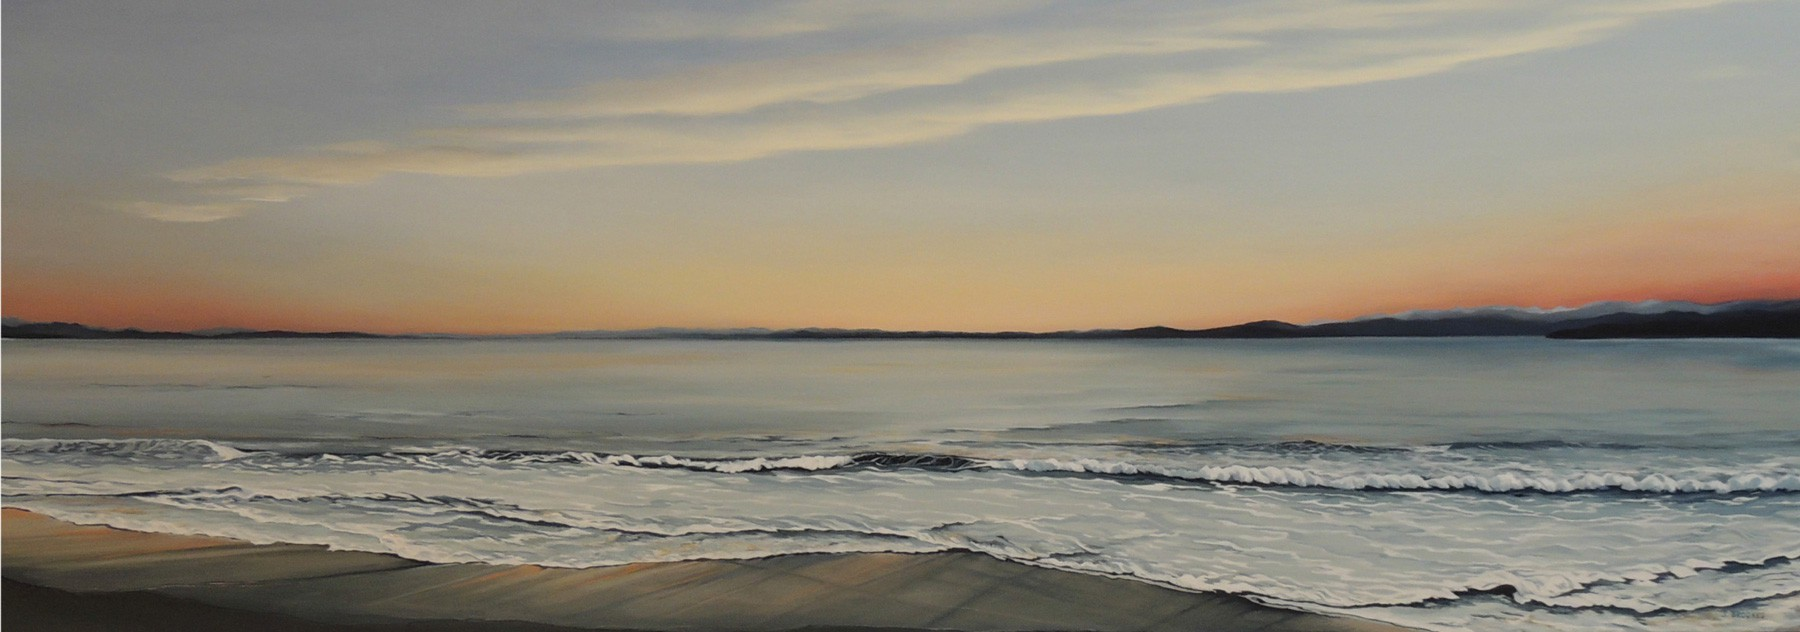 Gentle Waves 44x84 - 2013